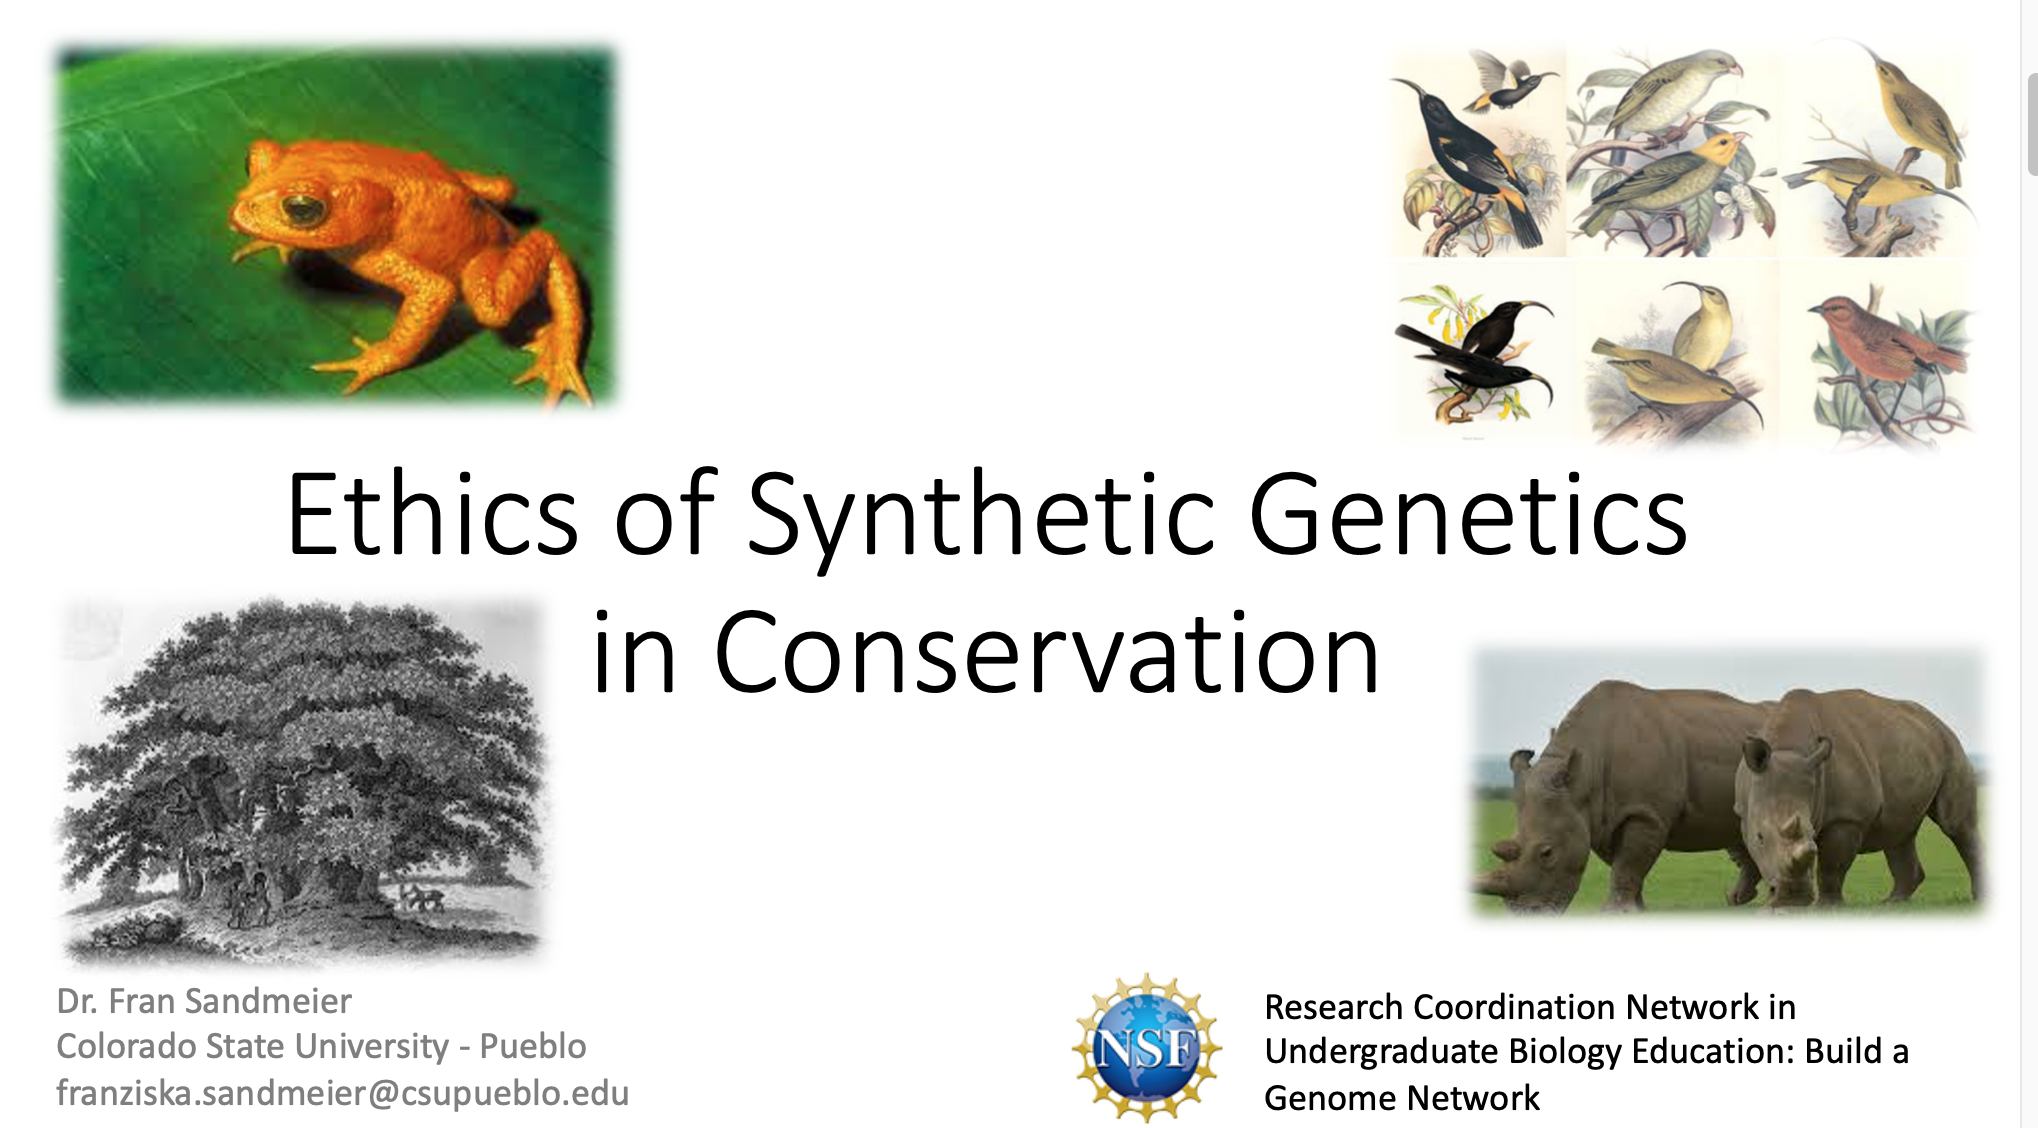 Conservation and ethics of using synthetic genetics